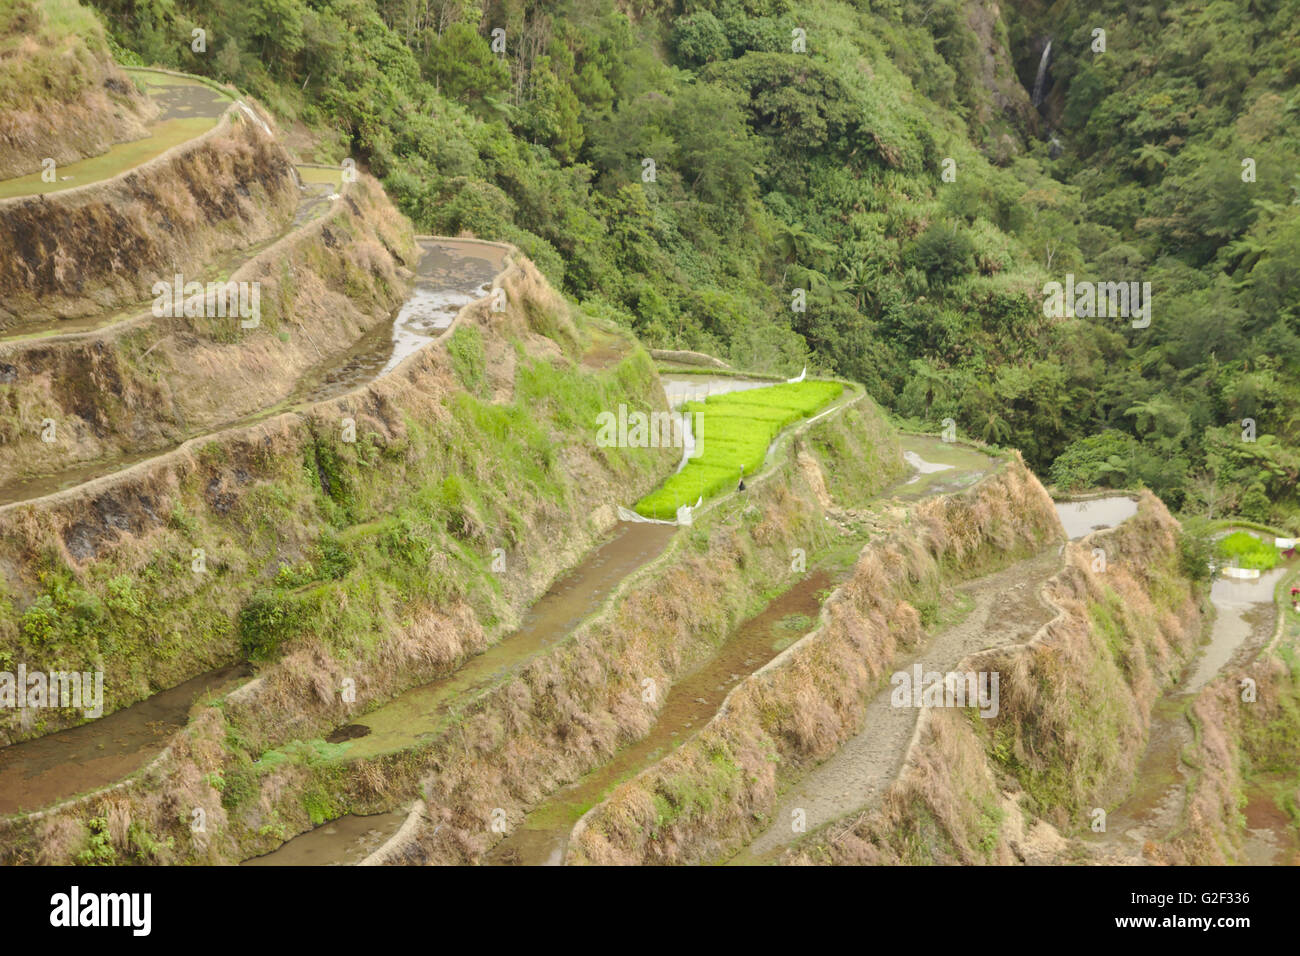 Ifugao rice terraces from Banaue viewpoint in April, northern Luzon, Philippines - Stock Image